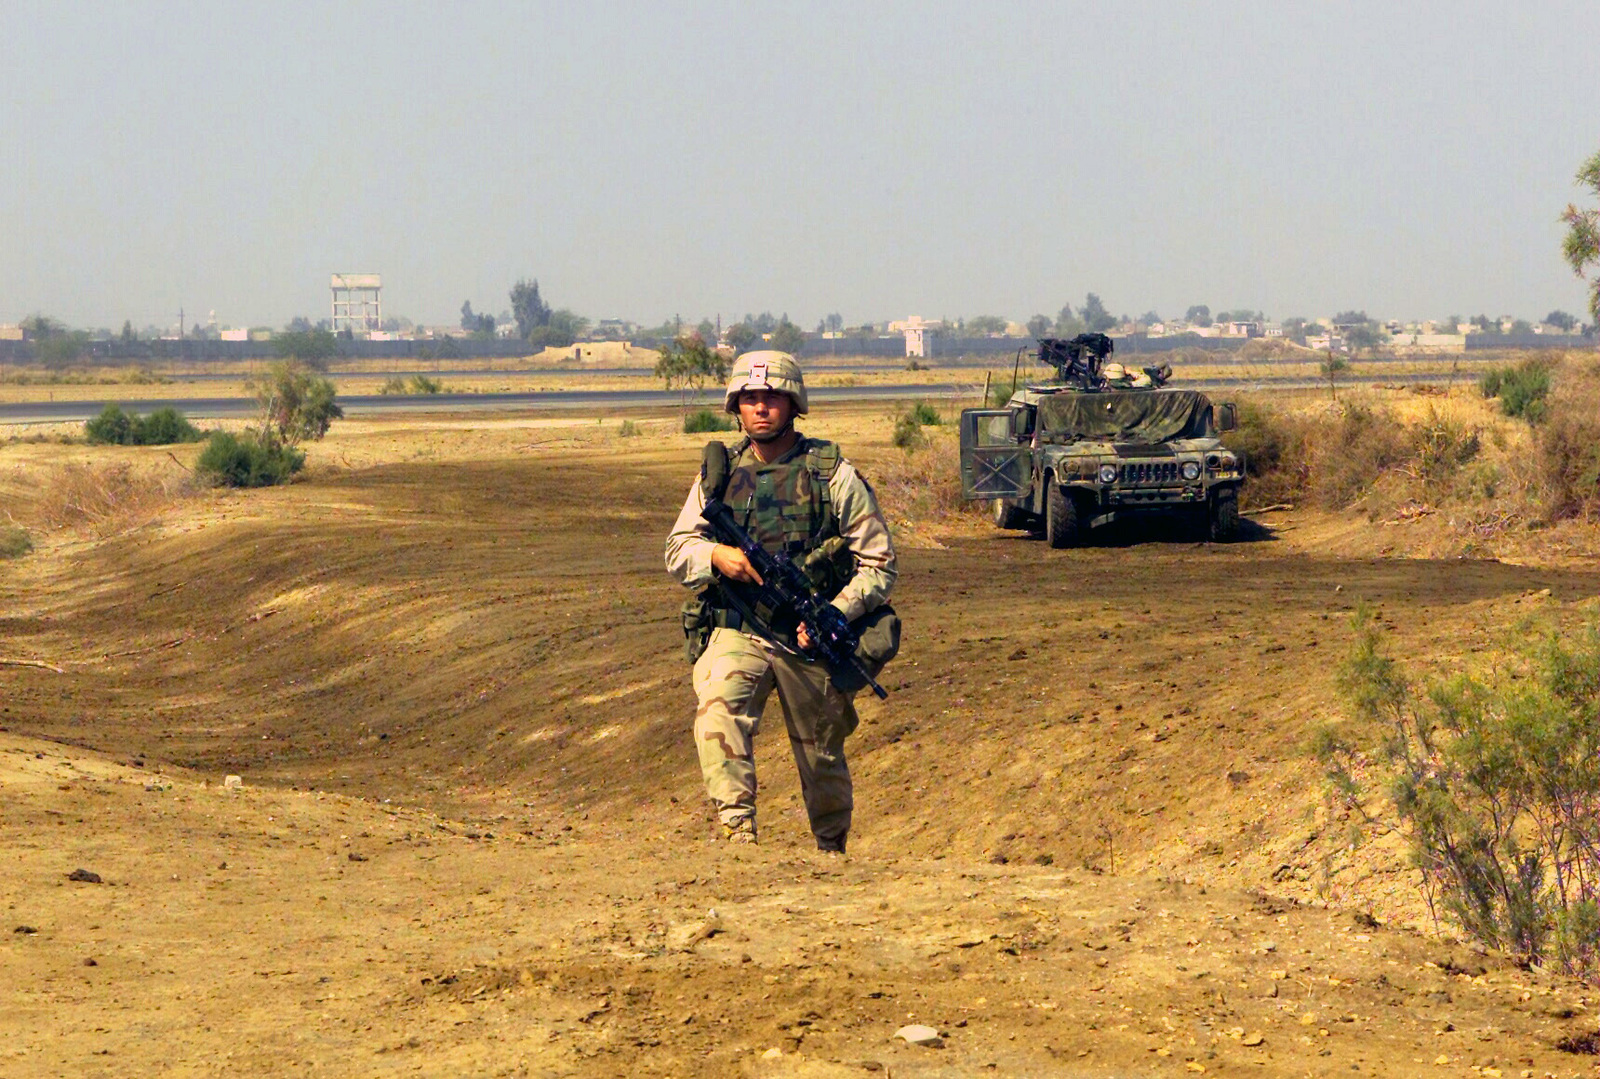 STAFF Sergeant Thomas E. Dougherty, Squad Leader, 1ST Platoon, 1ST Battalion, 187th Infantry Regiment makes his rounds during a spot check on the security post at a forward operating base in the Operation ENDURING FREEDOM area. In the background an armed M1043 High-Mobility Multipurpose Wheeled Vehicle (HMMWV) and crew standby